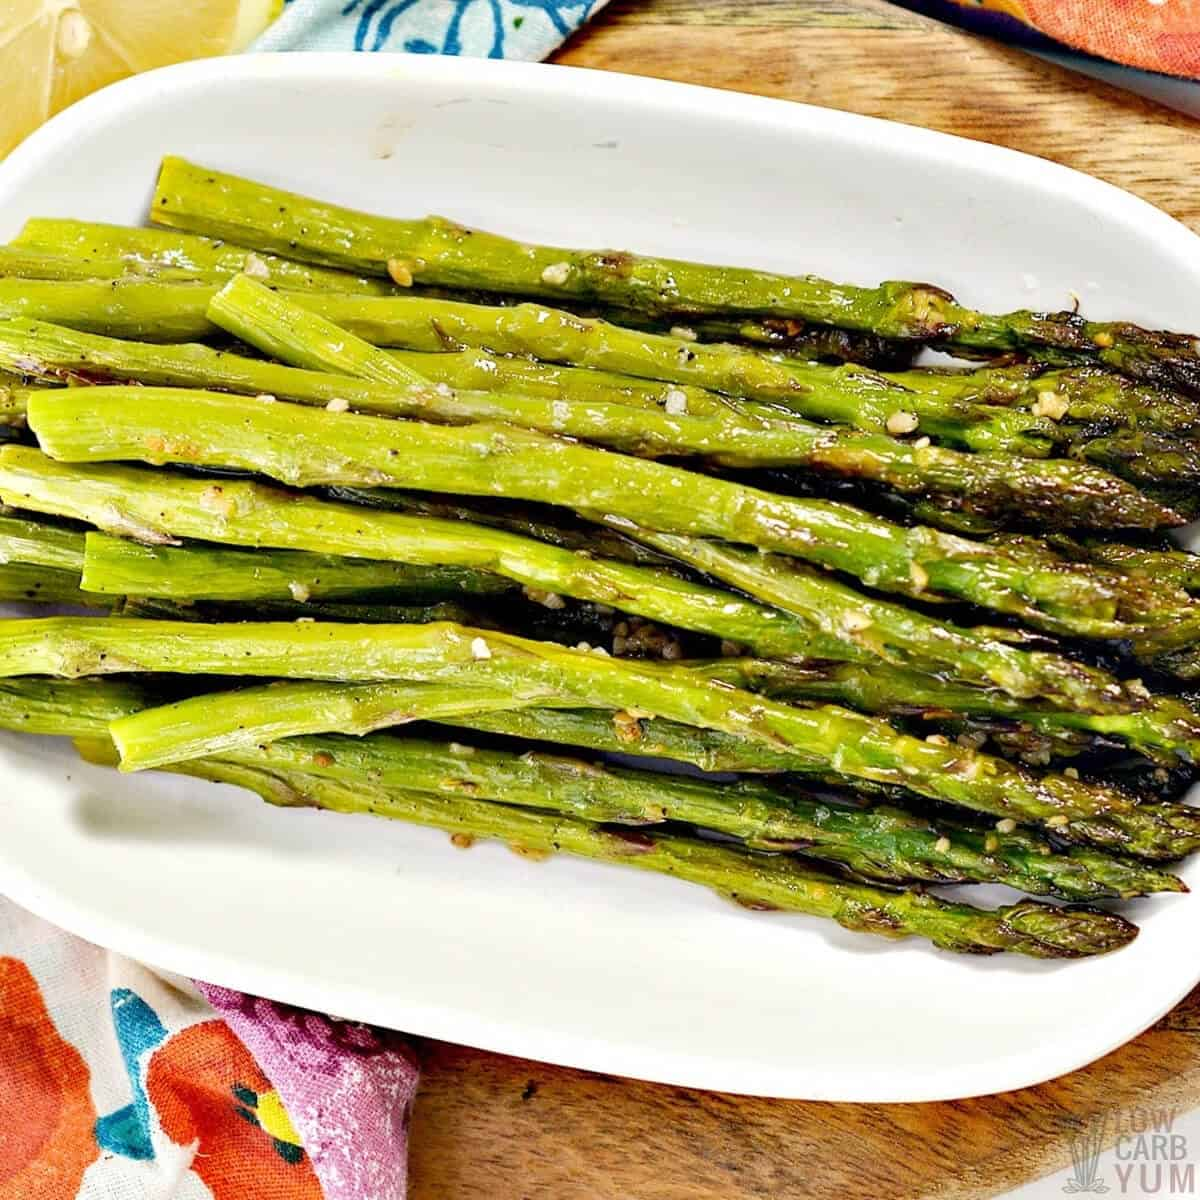 oven roasted asparagus spears